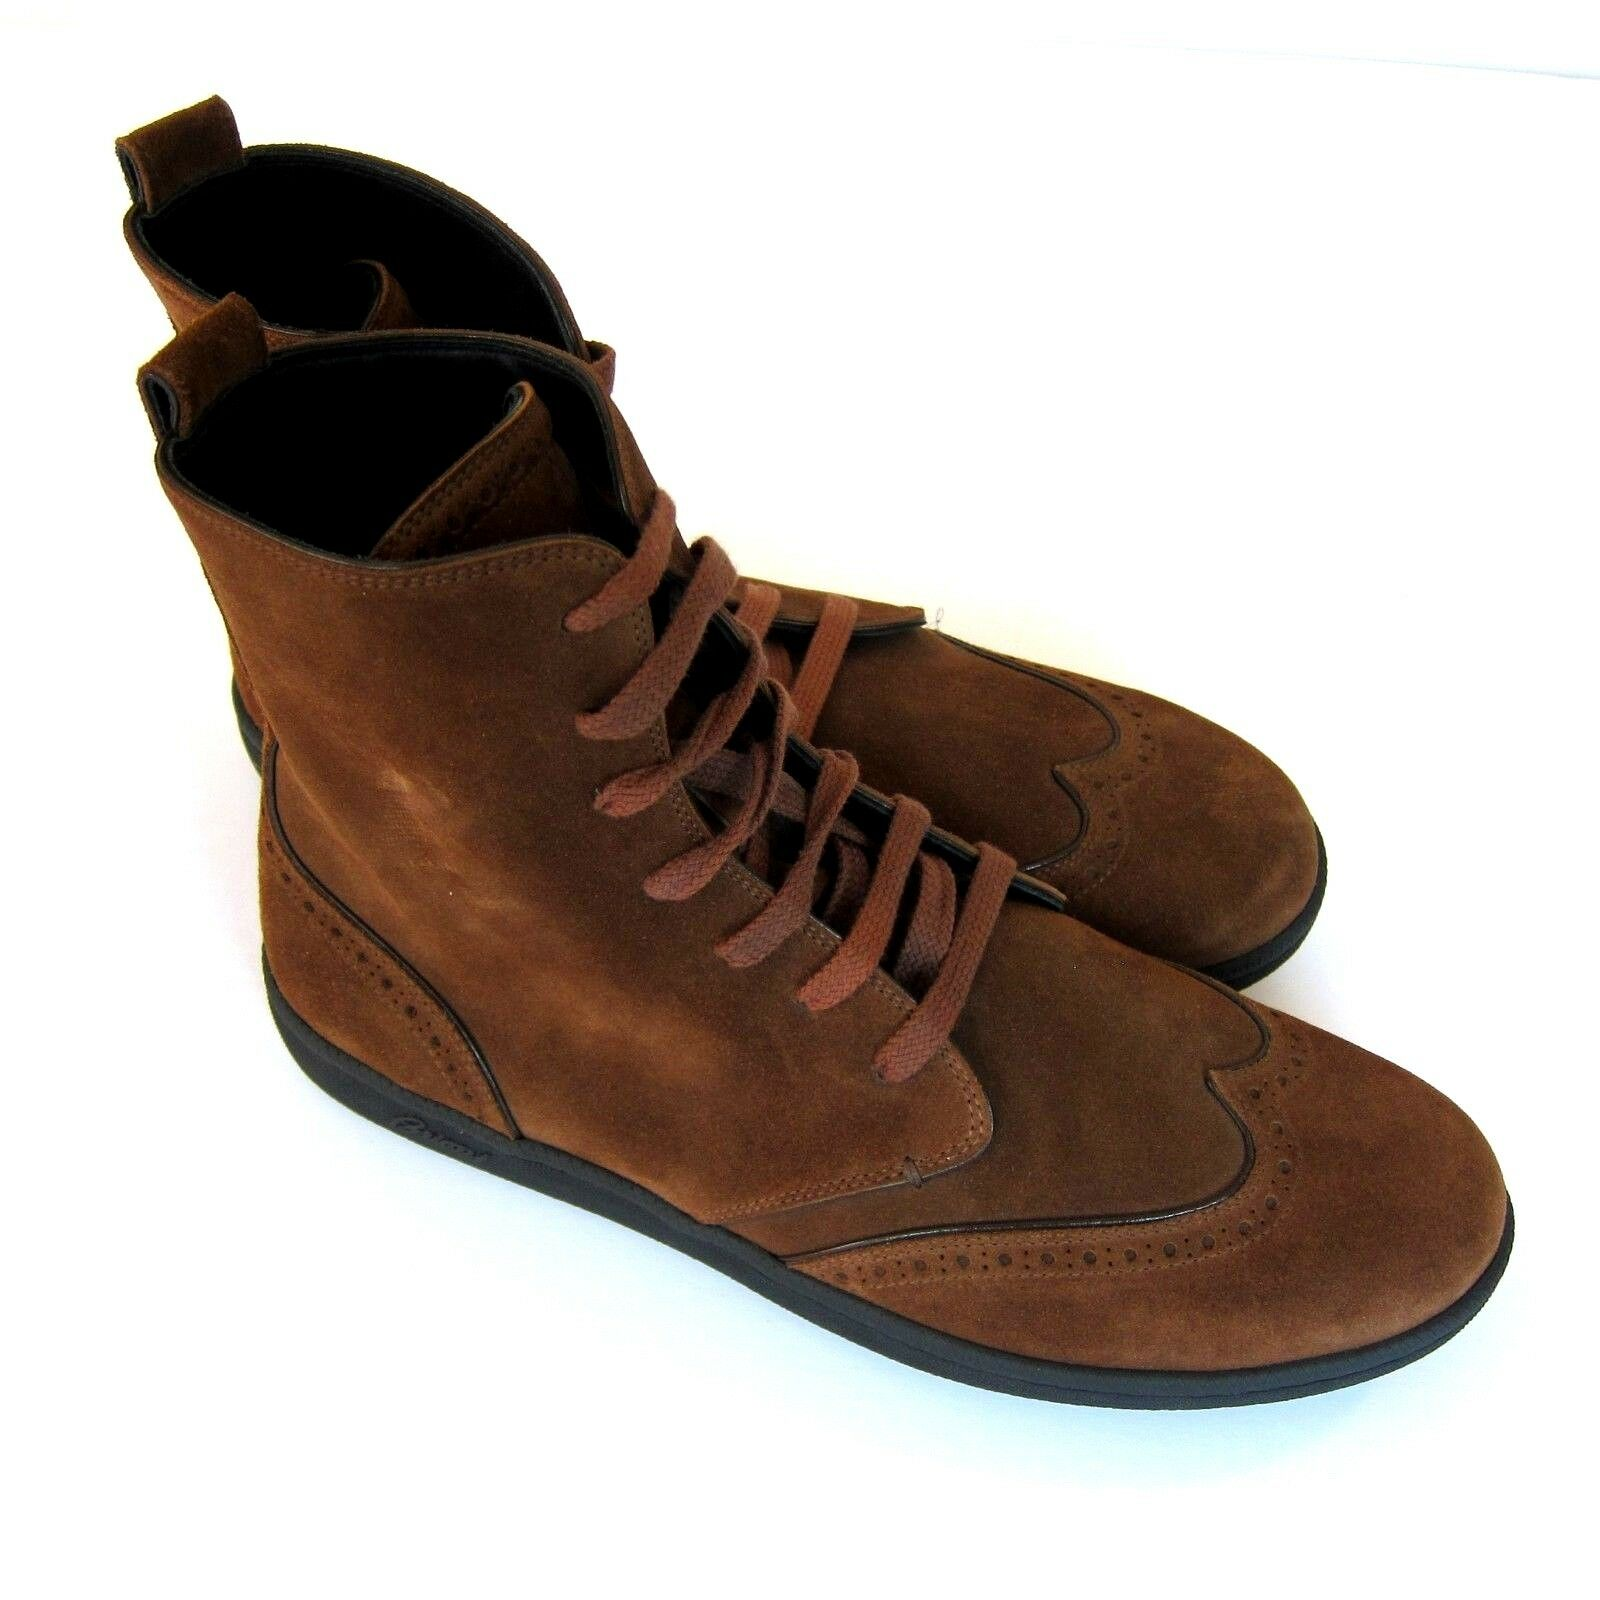 J-3485192 New Brioni Suede marrone Lace Chukka Ankle Boot Shoe US 9.5 Marked 8.5